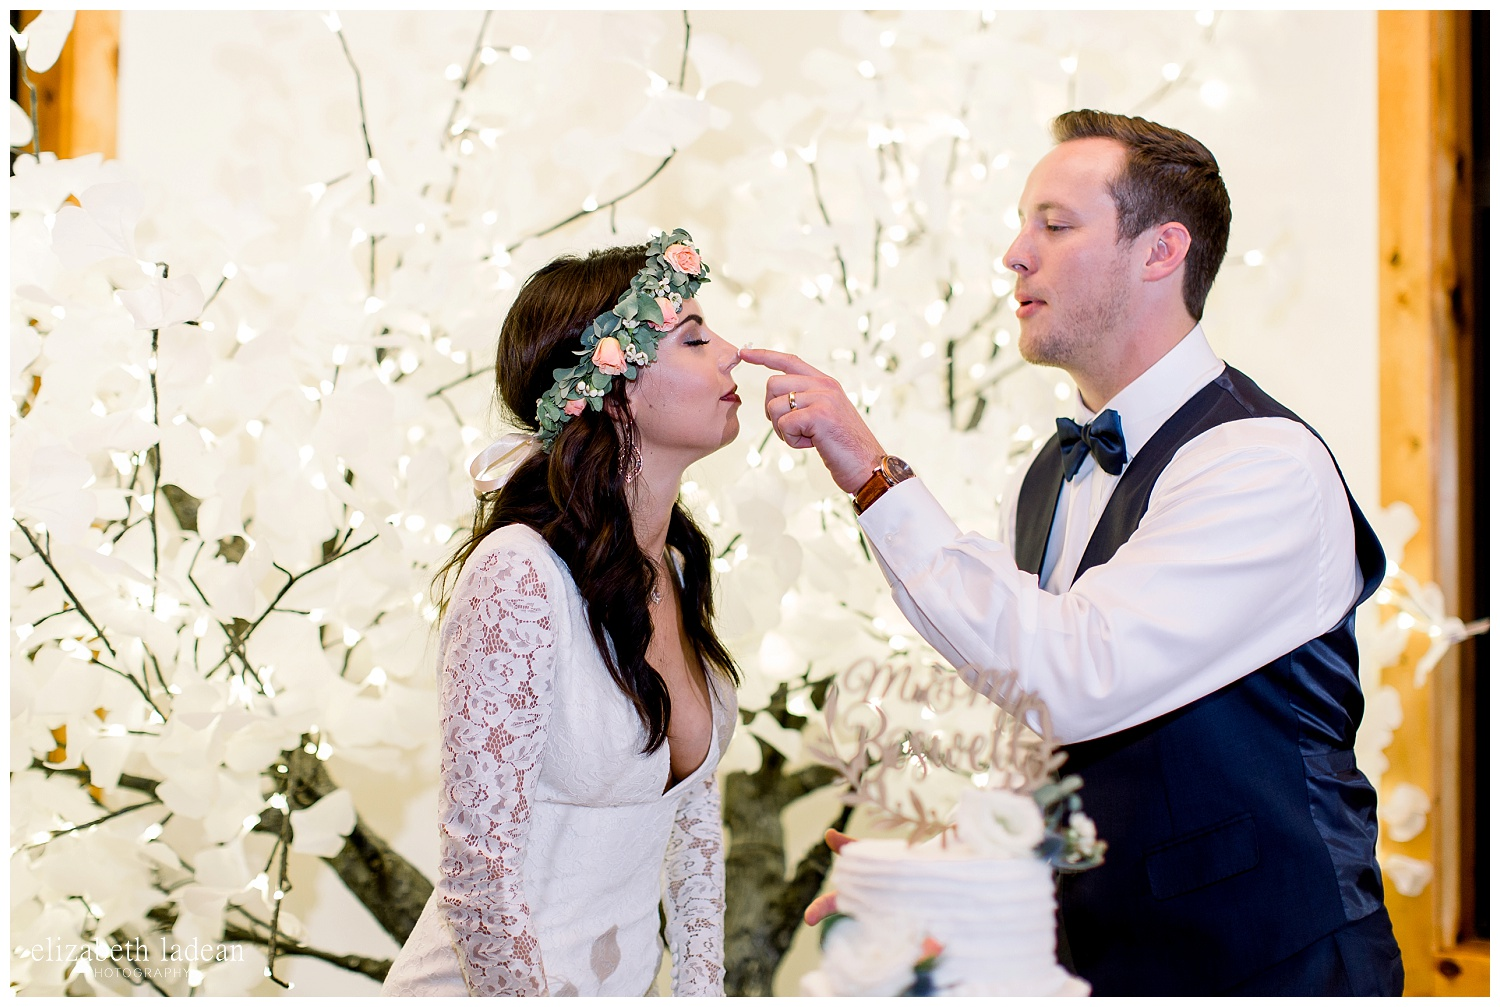 Willow-Creek-Blush-and-Blues-Outdoor-Wedding-Photography-S+Z2018-elizabeth-ladean-photography-photo_0619.jpg